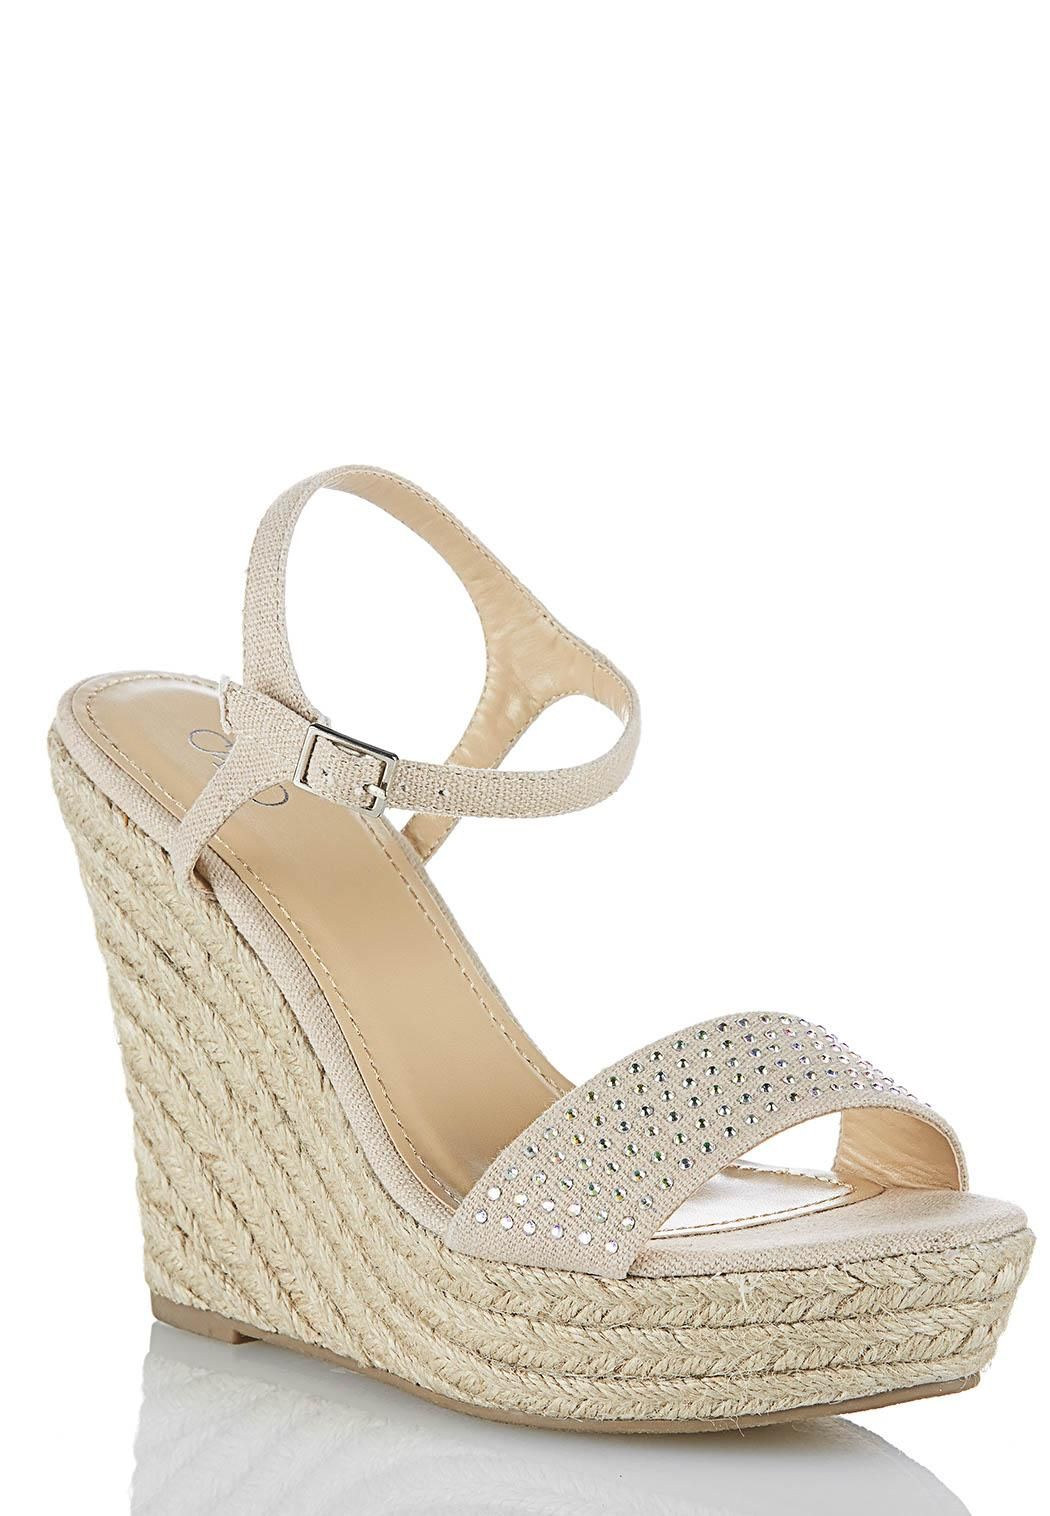 e6b258cf9 Crystal Canvas Rope Wedges Sandals Cato Fashions  CATOSUMMERSTYLE ...